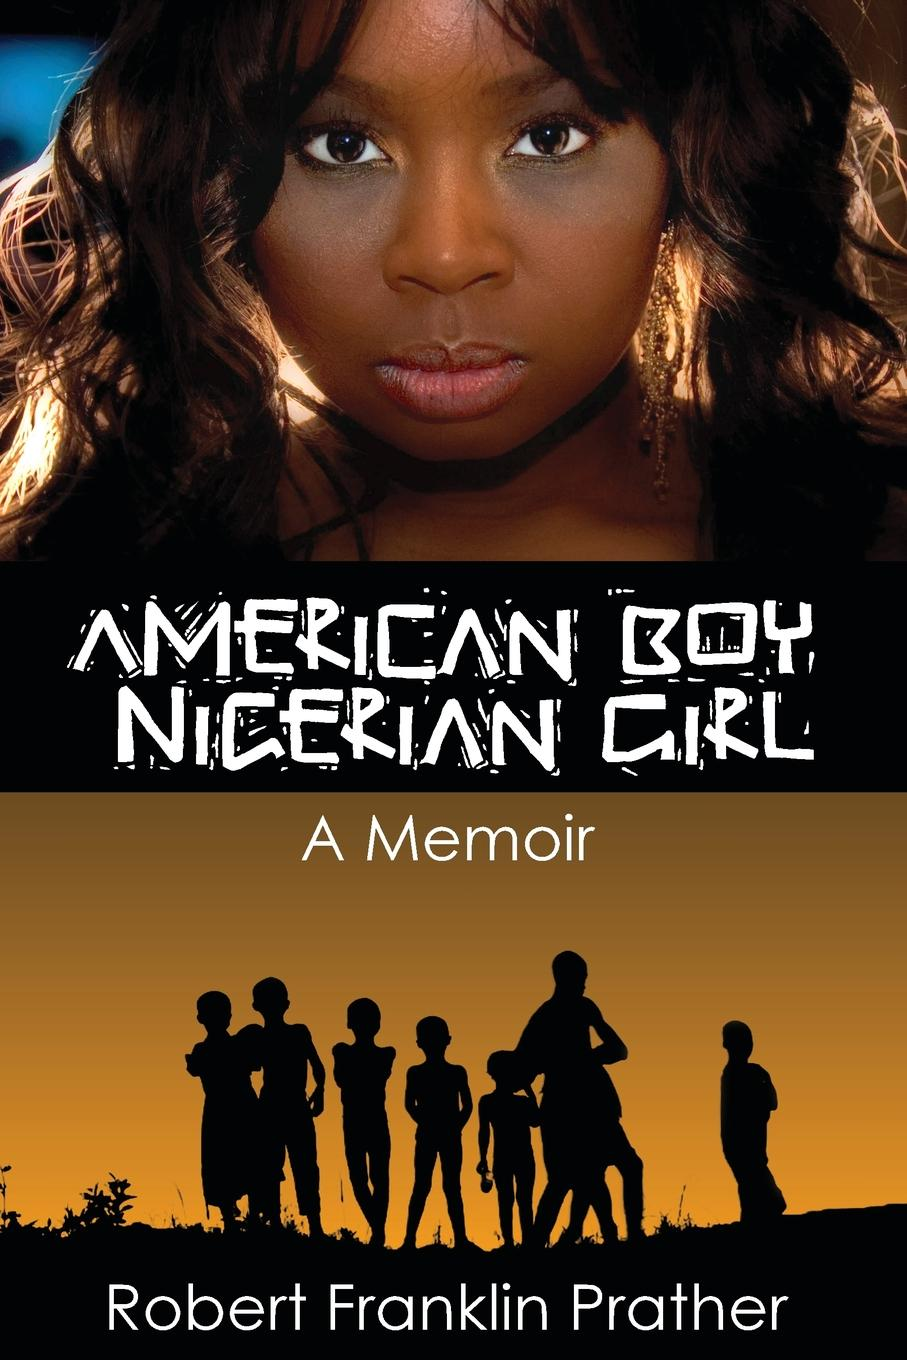 Robert F Prather American Boy, Nigerian Girl. A Memoir